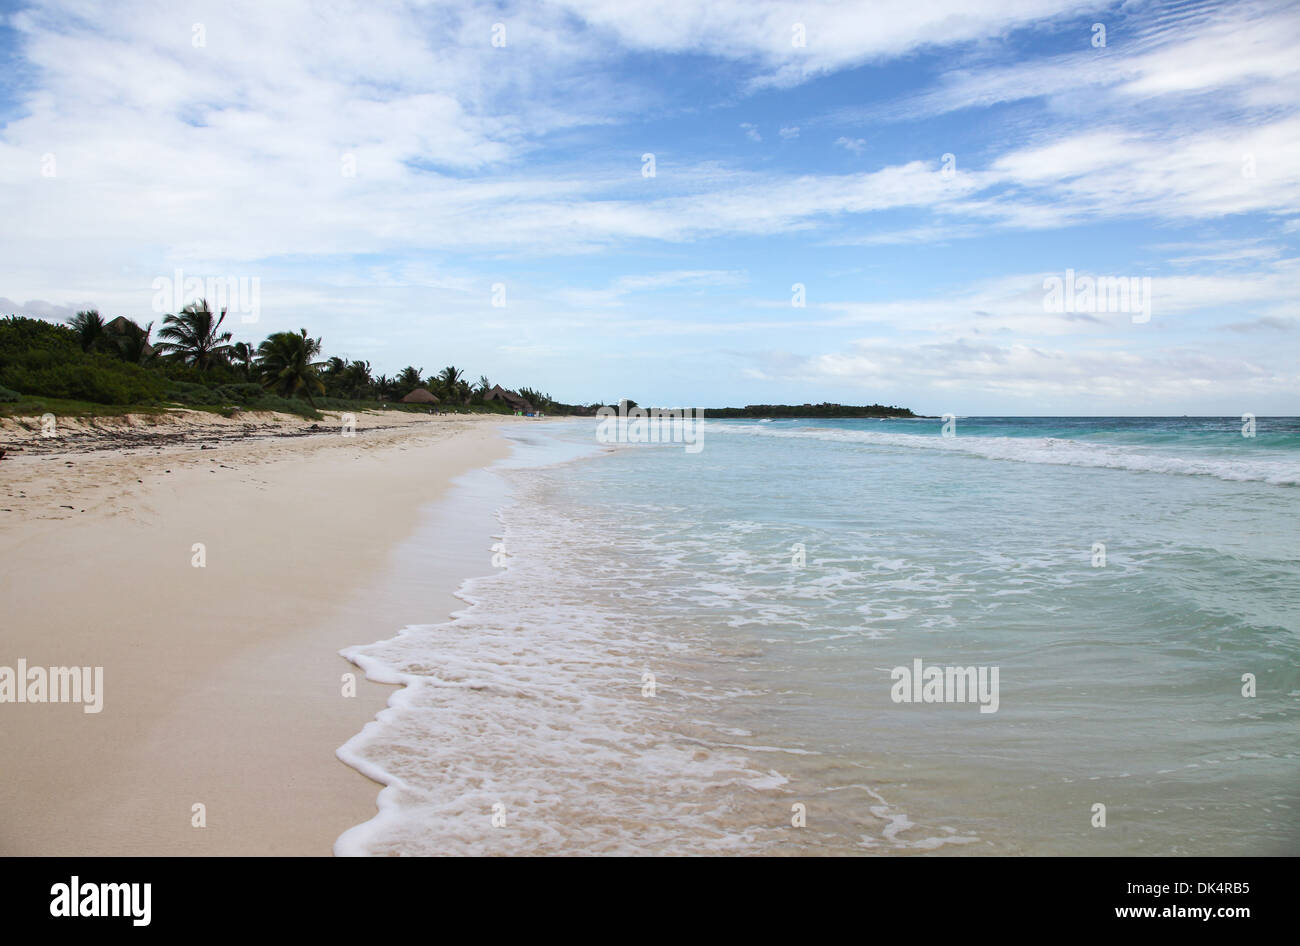 A deserted  beach at Riviera Maya Cancun Quintana Roo Yucatan Peninsular Mexico North America - Stock Image